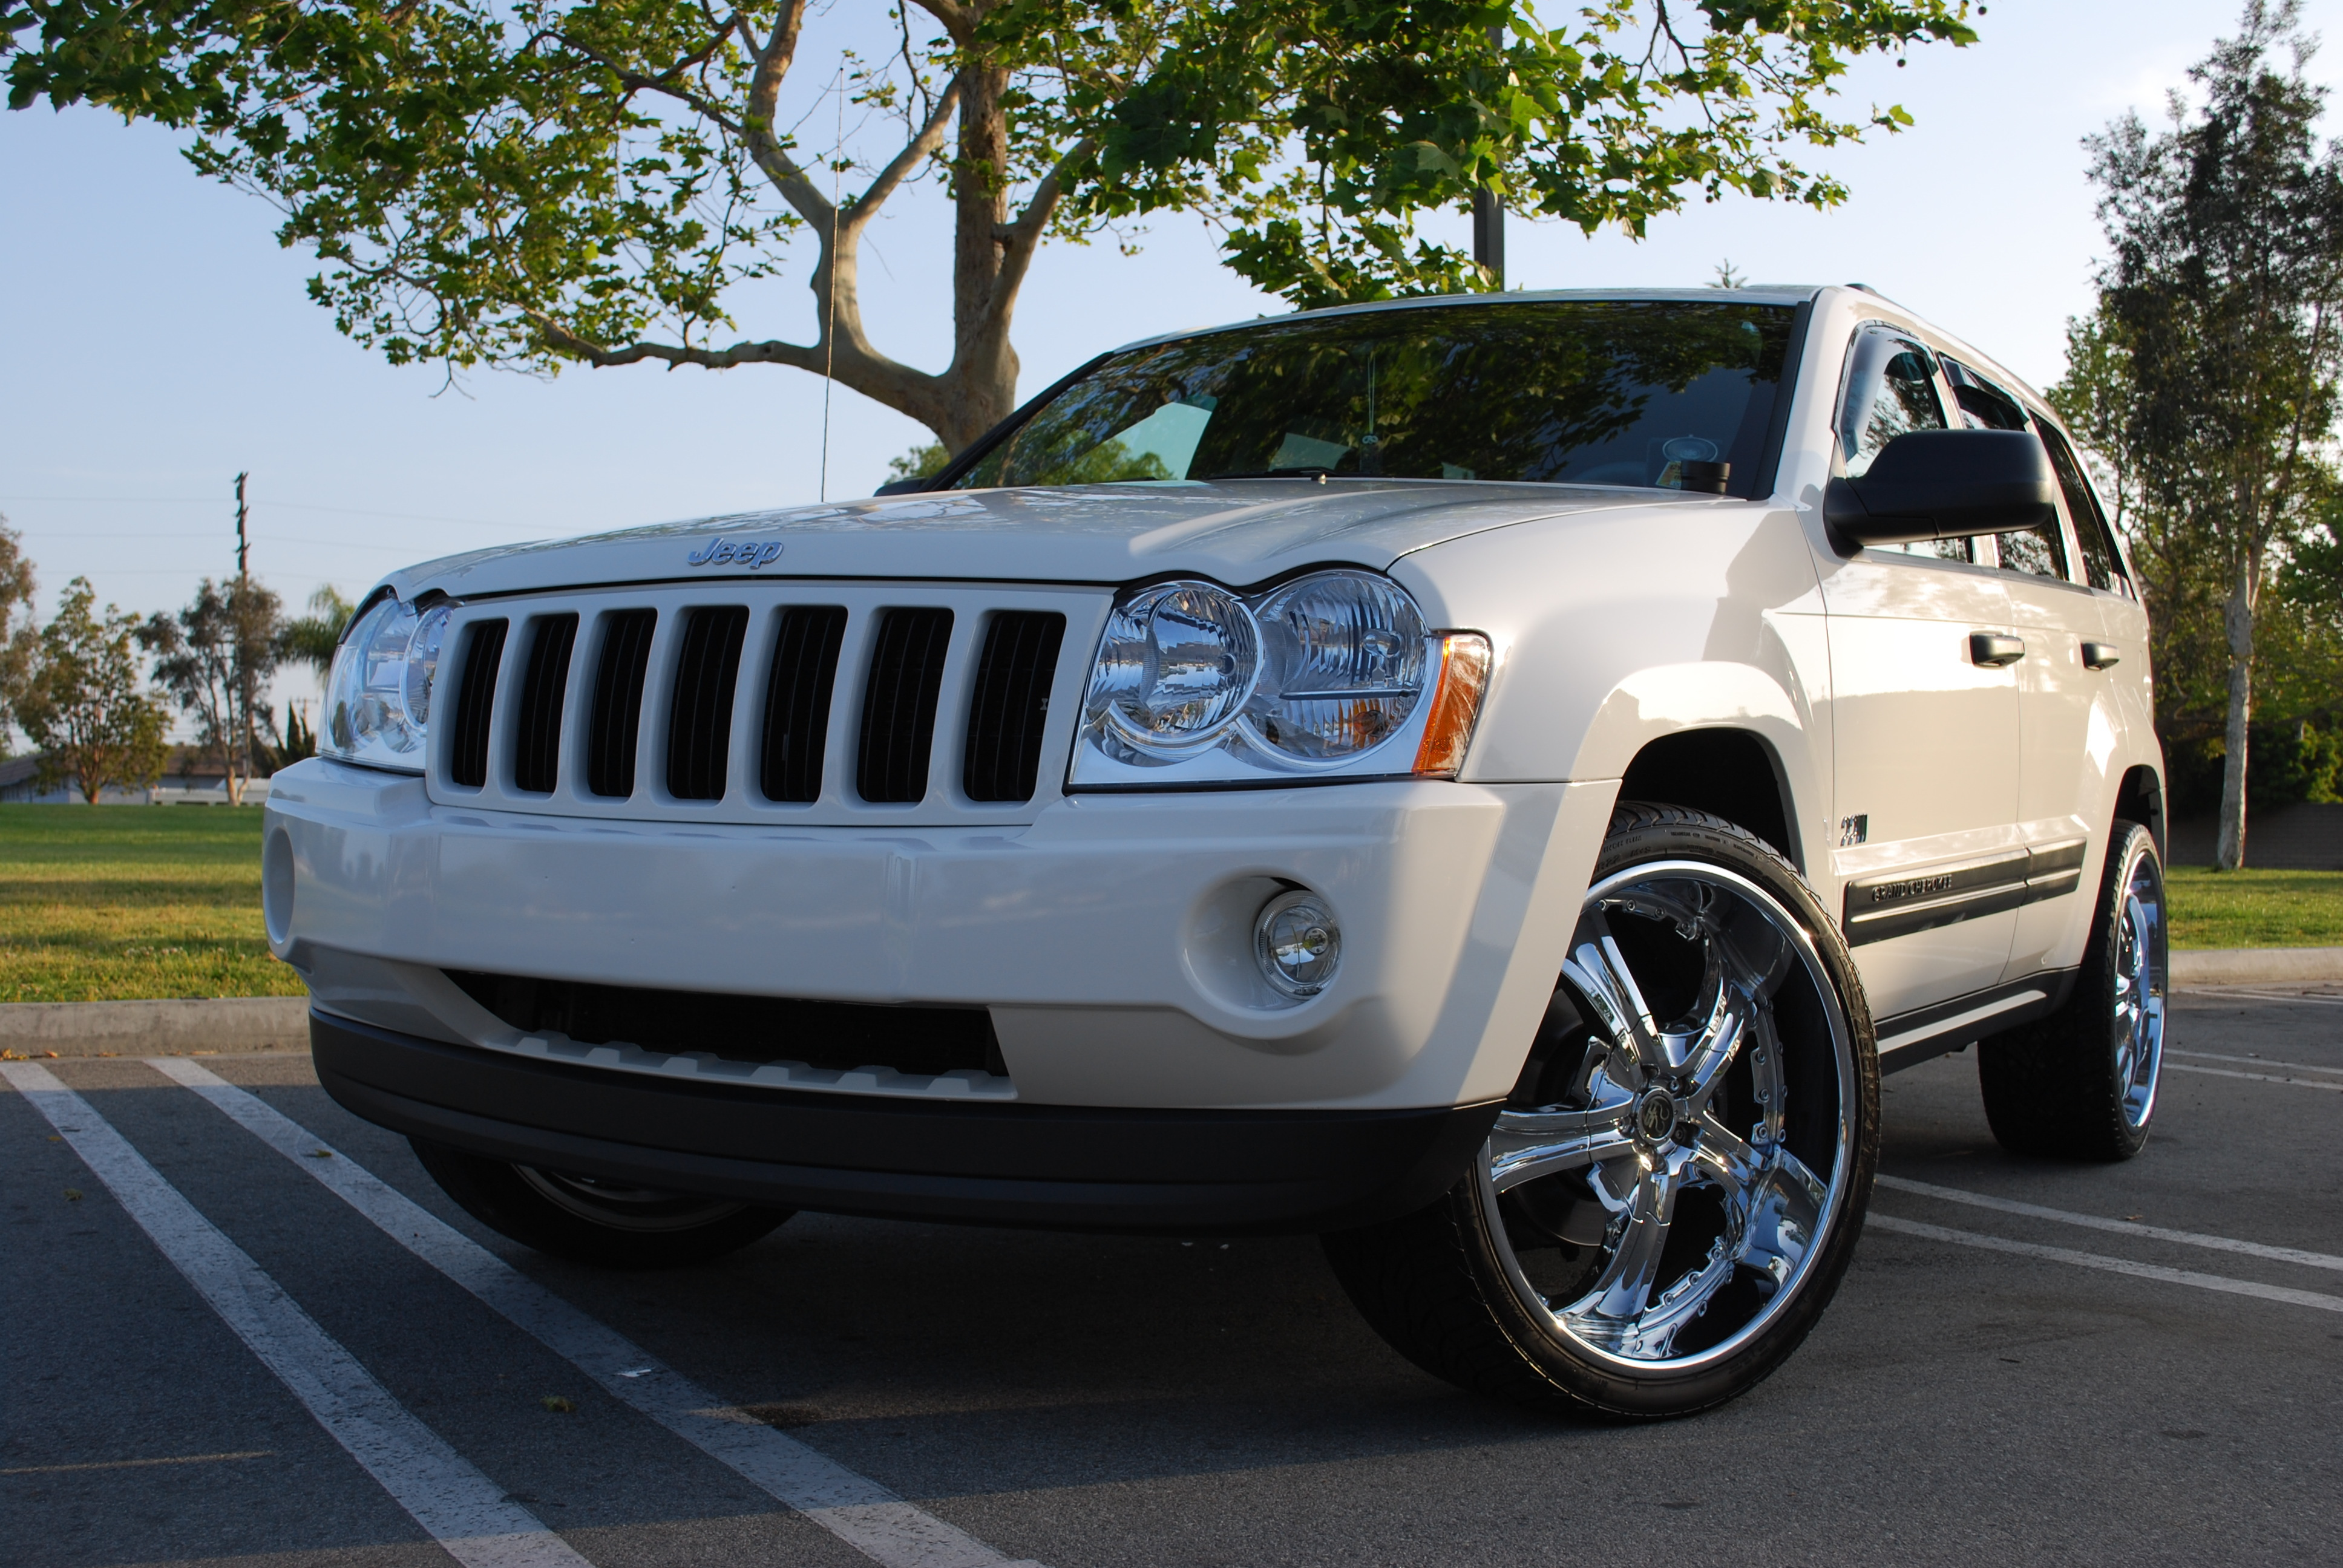 mattek216 2005 jeep grand cherokee specs photos modification info at cardomain. Black Bedroom Furniture Sets. Home Design Ideas